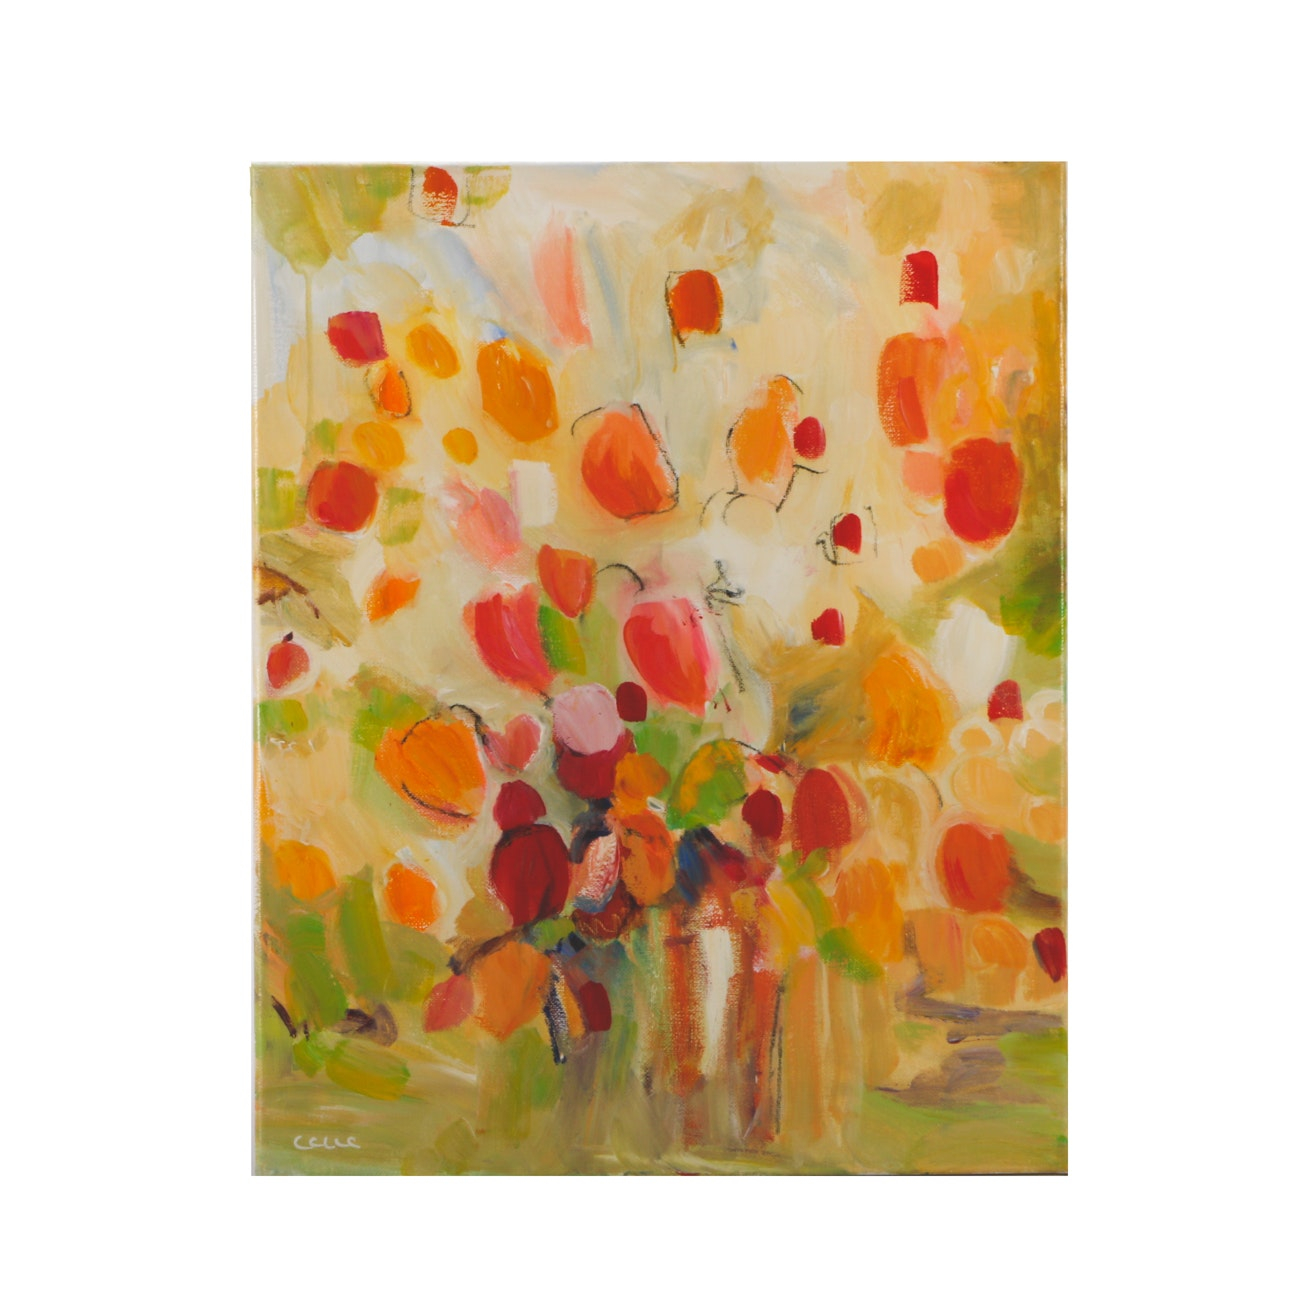 """CCLLC Mixed Media Painting on Canvas """"Bright + Cheerful"""""""